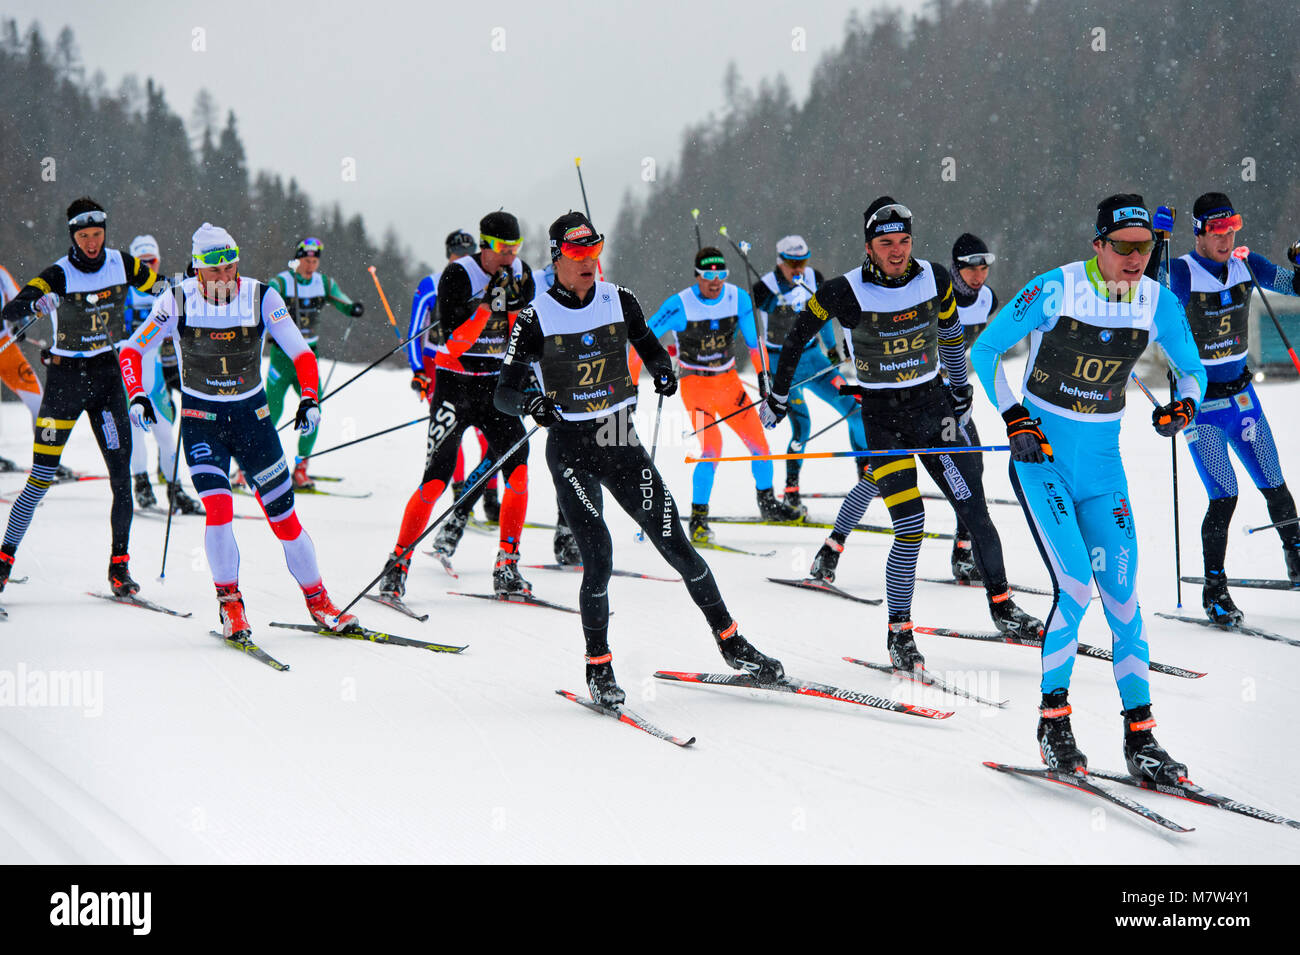 Cross country skier  Petter Northug, Norway, number 1, and other cross country skiers at the 50th Engadin Skimarathon, - Stock Image